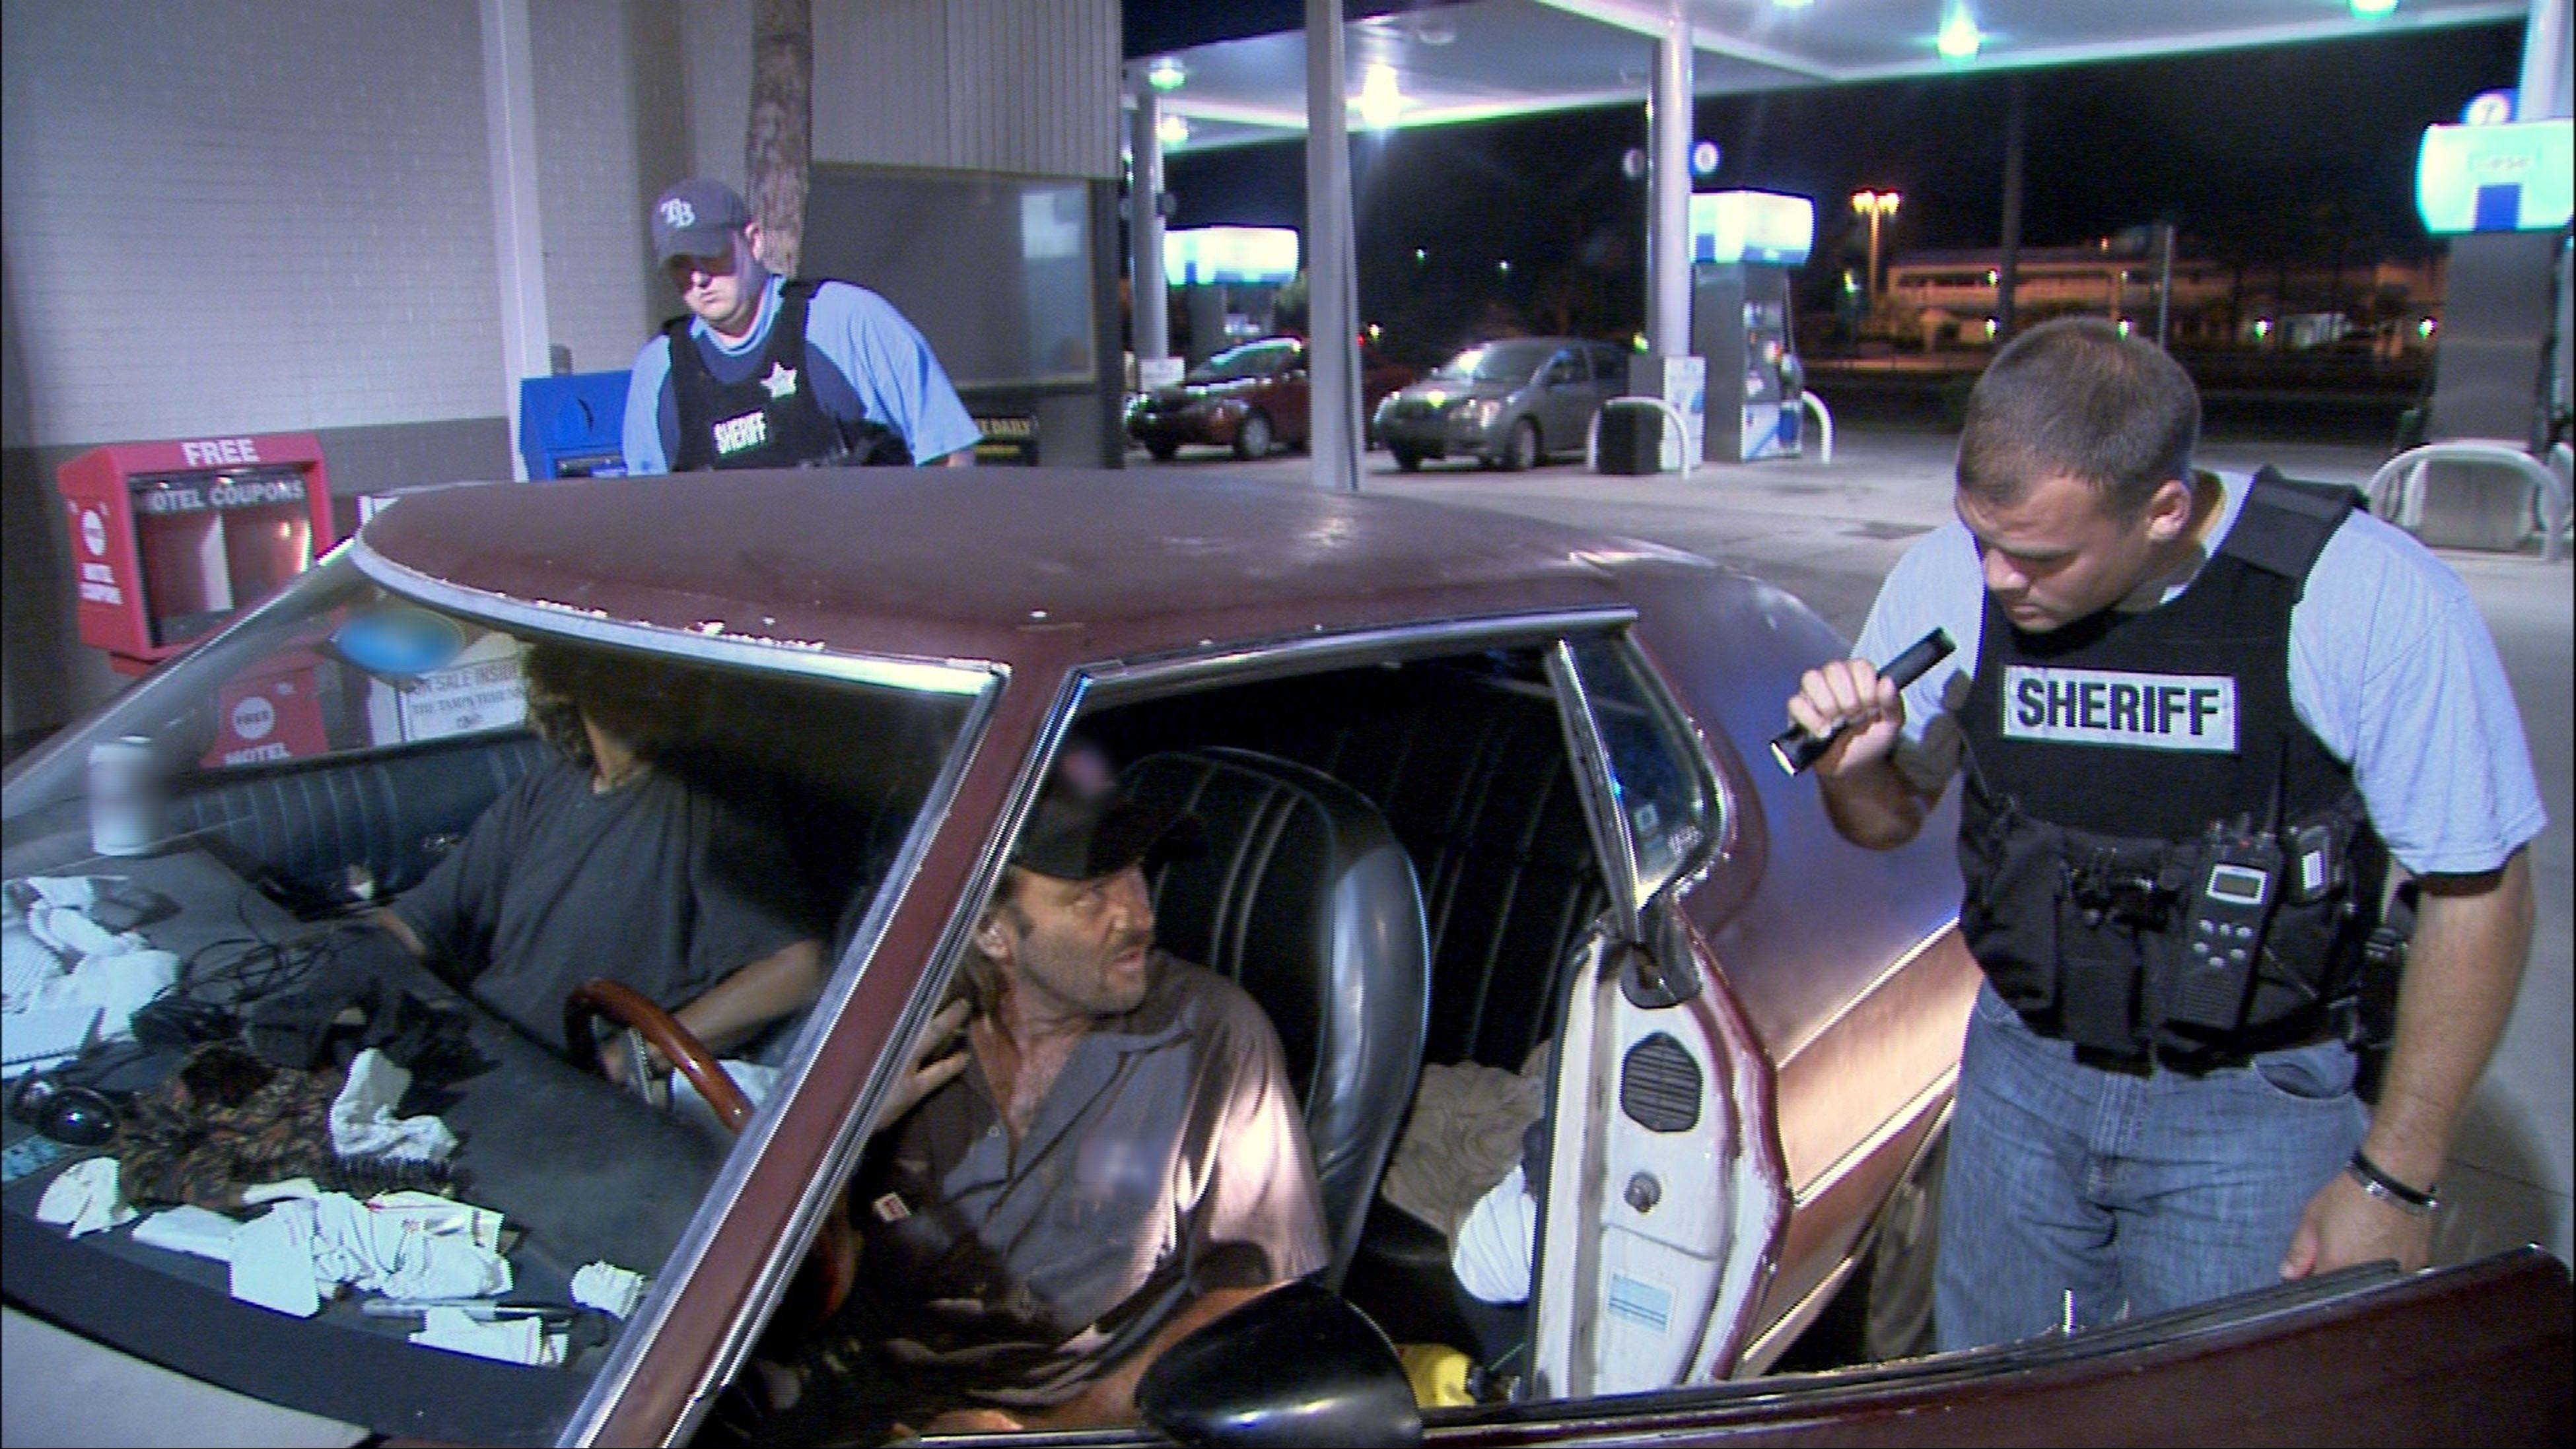 Police officers in Hillsborough, Fla., interrogate two occupants of a car for suspicious drug activity in the �Liar Liar #6� episode of �COPS.� The Saturday night television fixture is leaving Fox after 25 years to move to the Spike network.